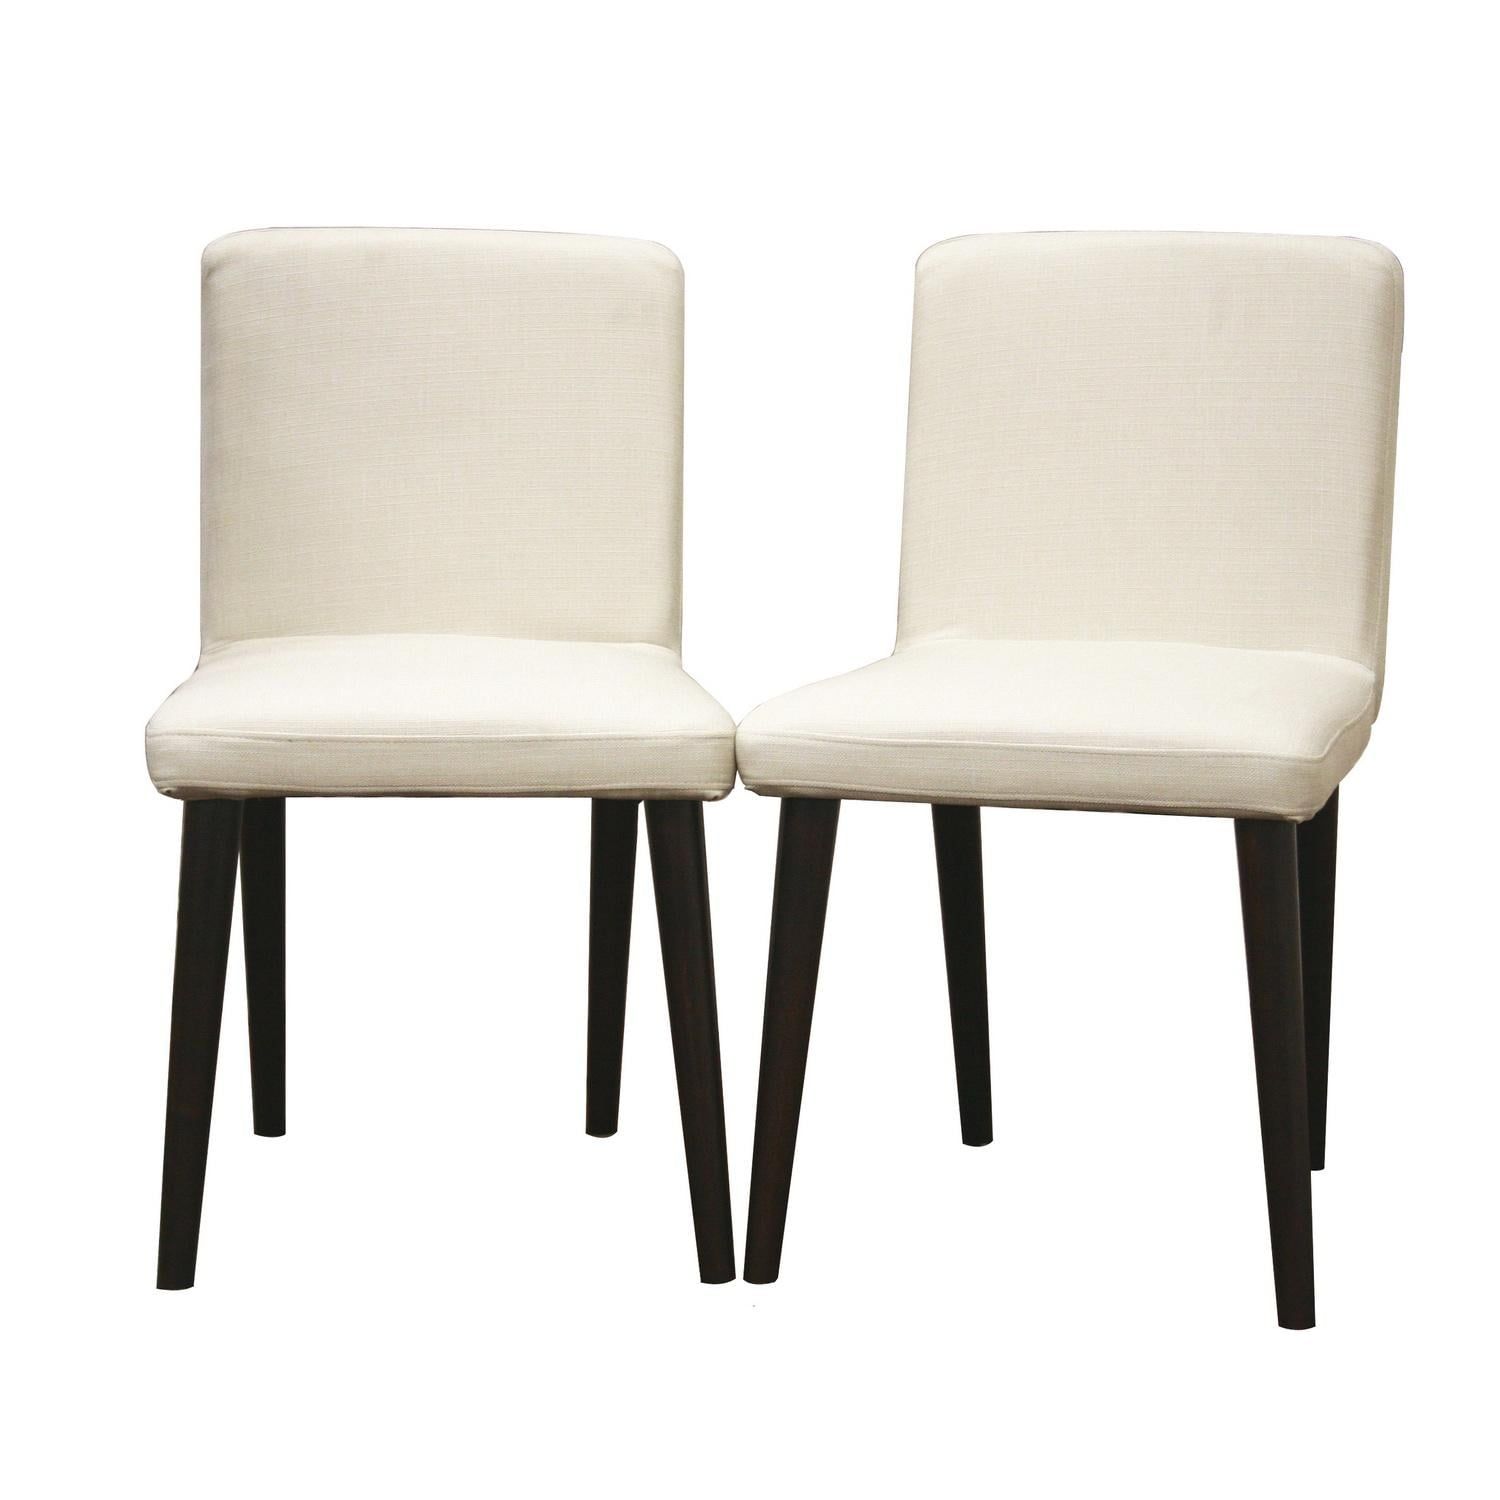 Dining Chairs Deals: Yulene Cream Modern Dining Chairs (Set Of 2)